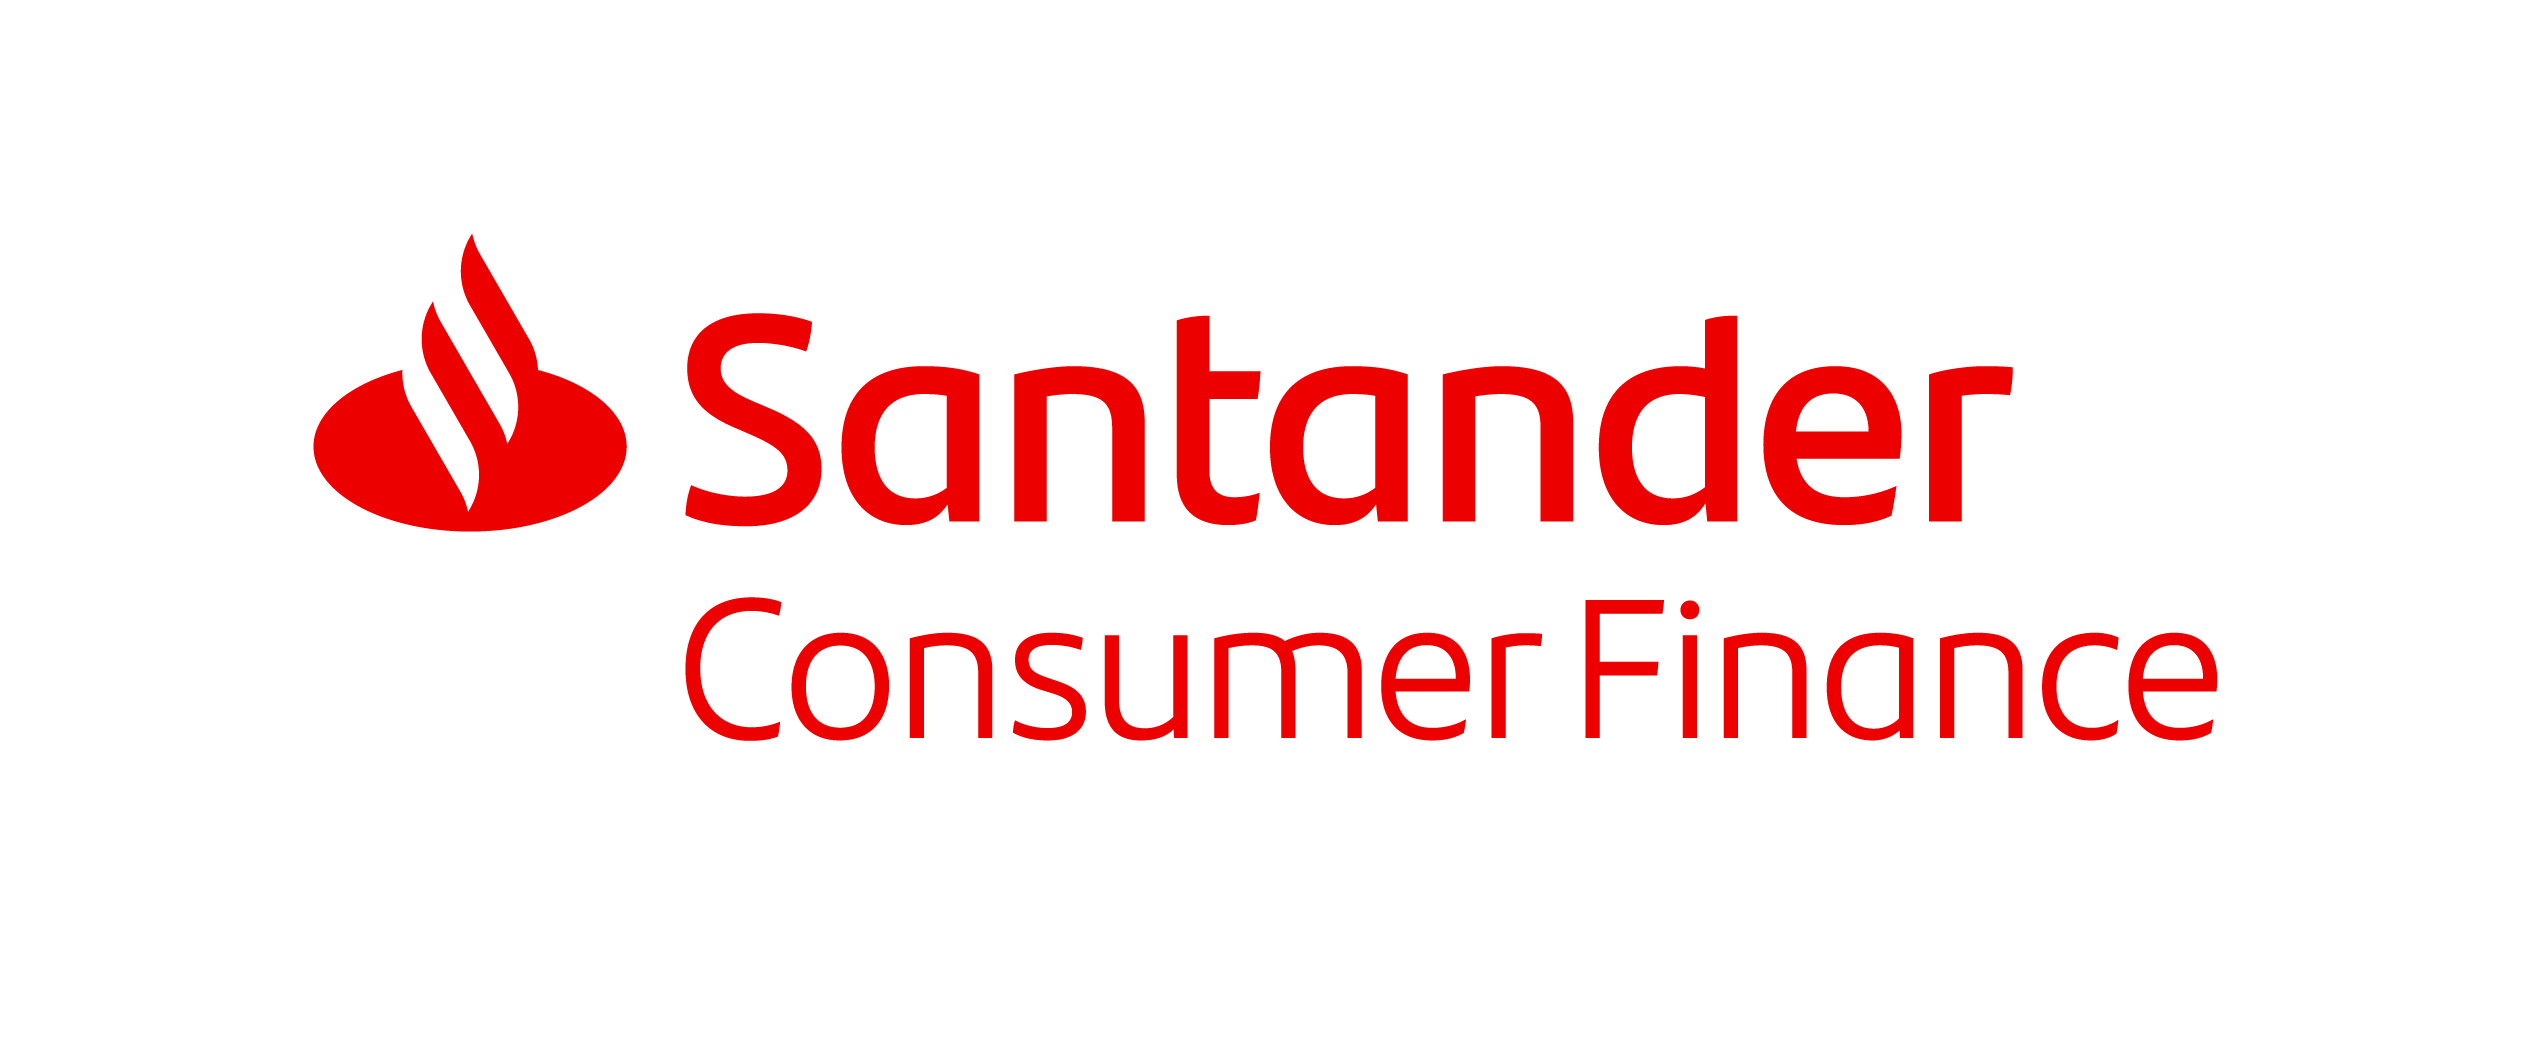 SANTANDER CONSUMER FINANCE ENTRA IN VINTURAS